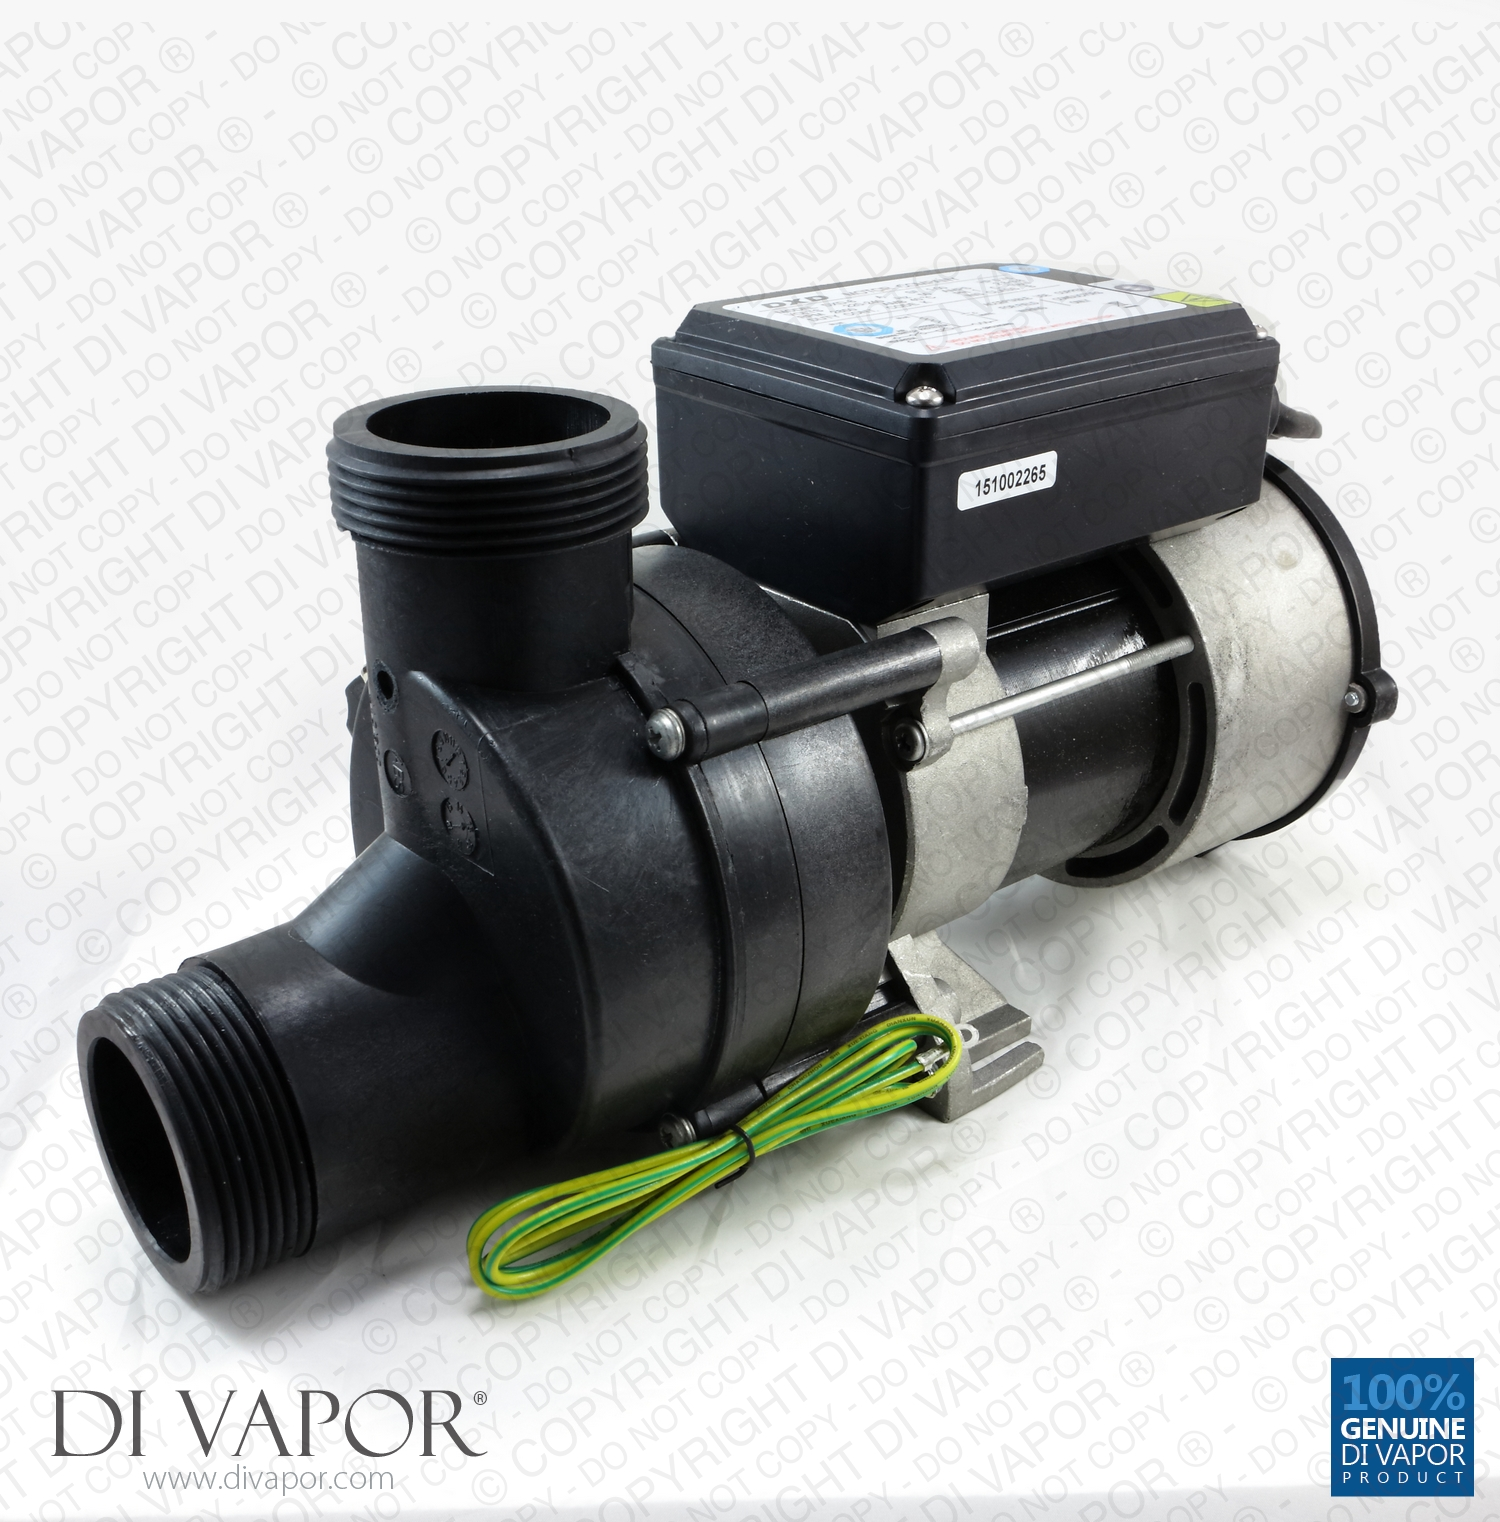 Dxd 8a Water Circulation Pump For Hot Tub